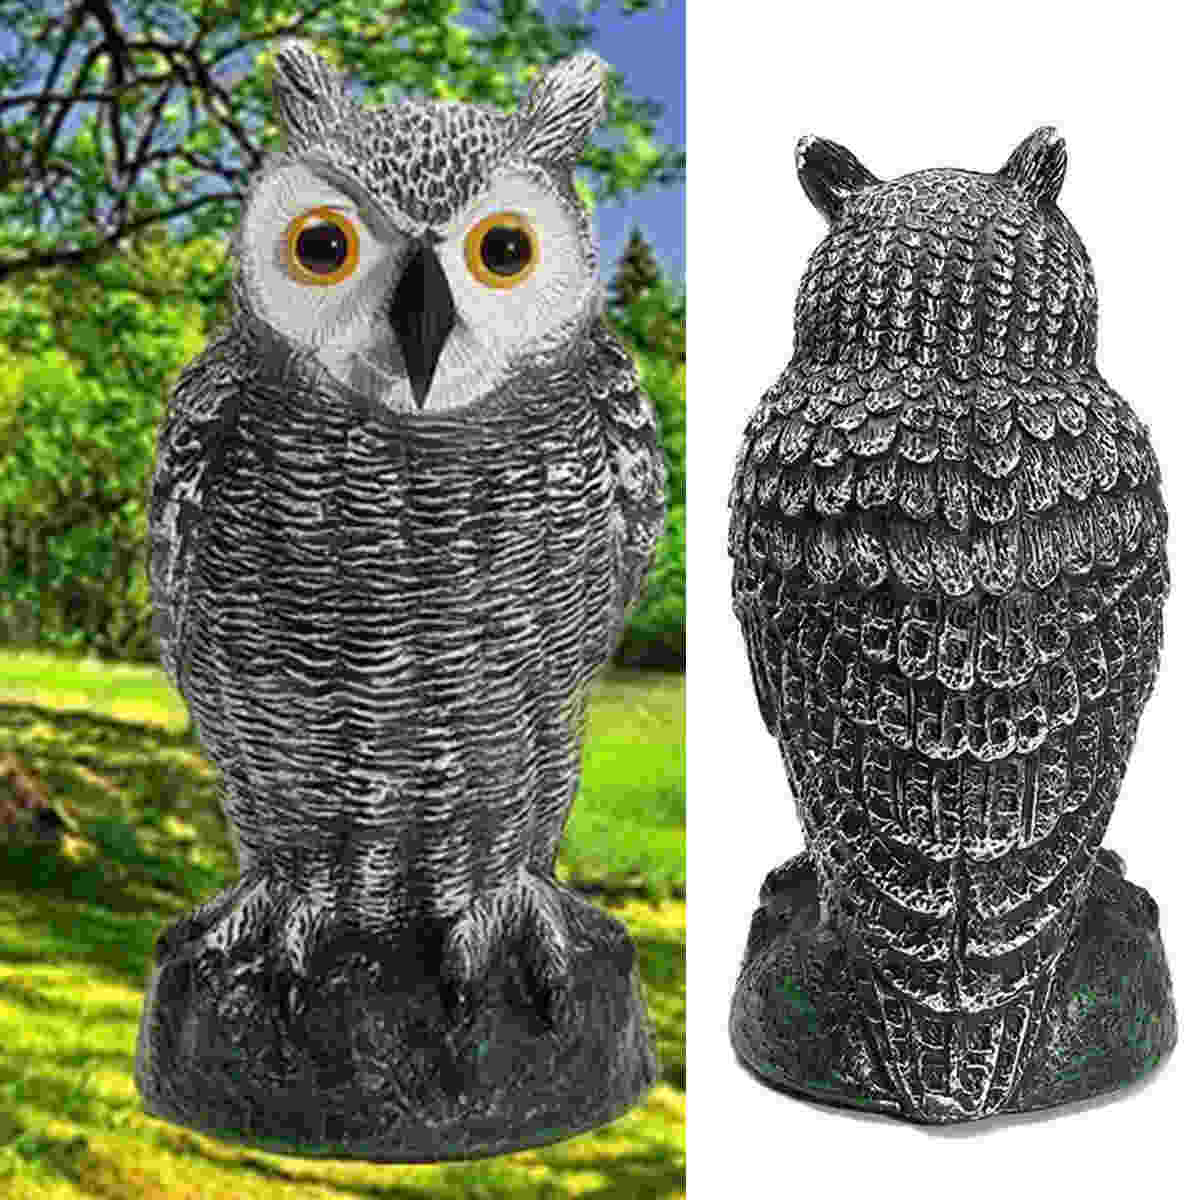 Jx Lclyl Fake Standing Owl Hunting Decoy Ornamental Repeller Garden Solar Powered Animal Scarer Weed Pest Crow